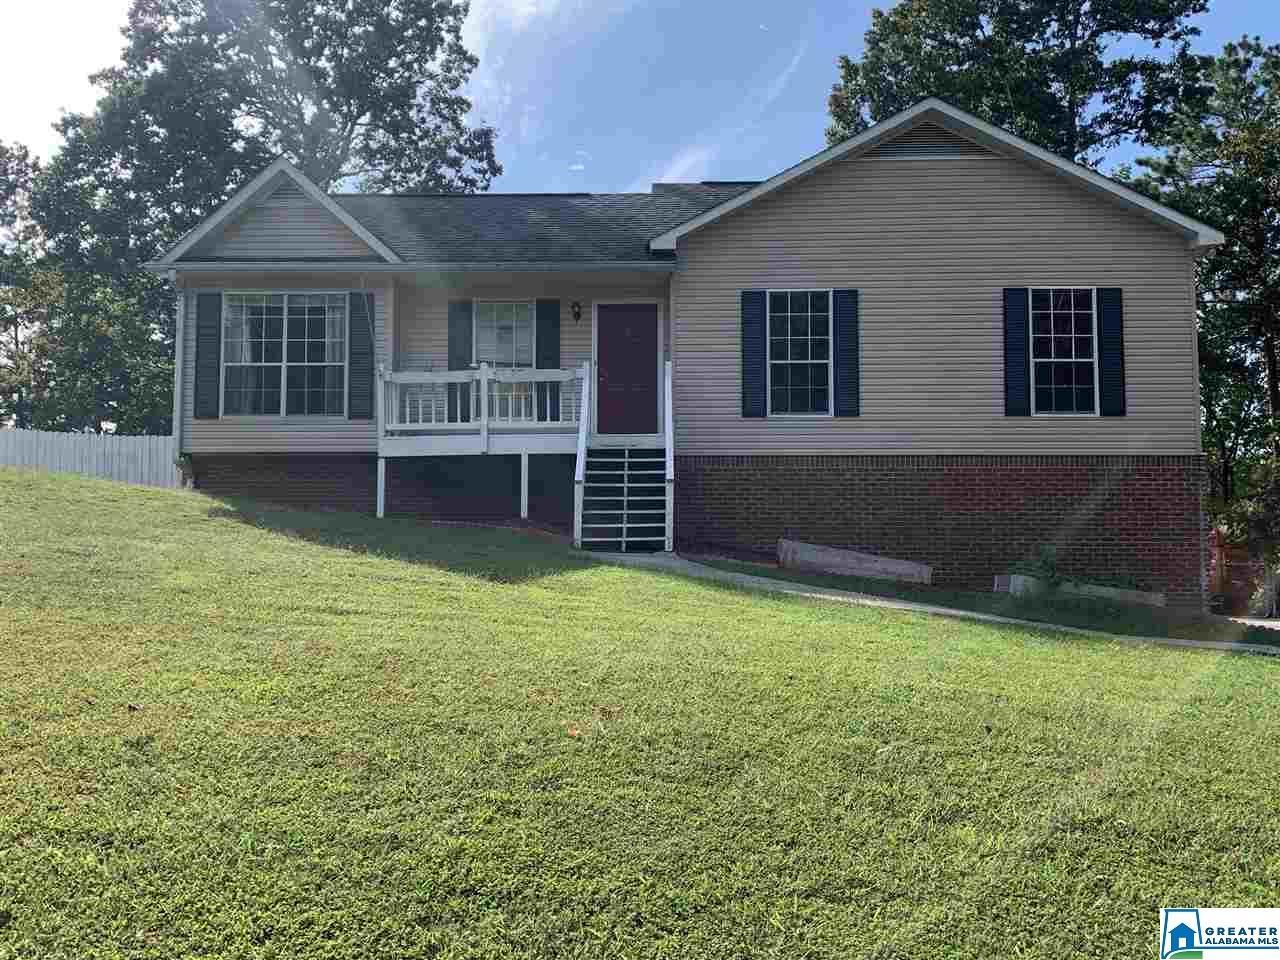 6000 HONEYSUCKLE CIR, Pinson, AL 35126 - MLS#: 896694